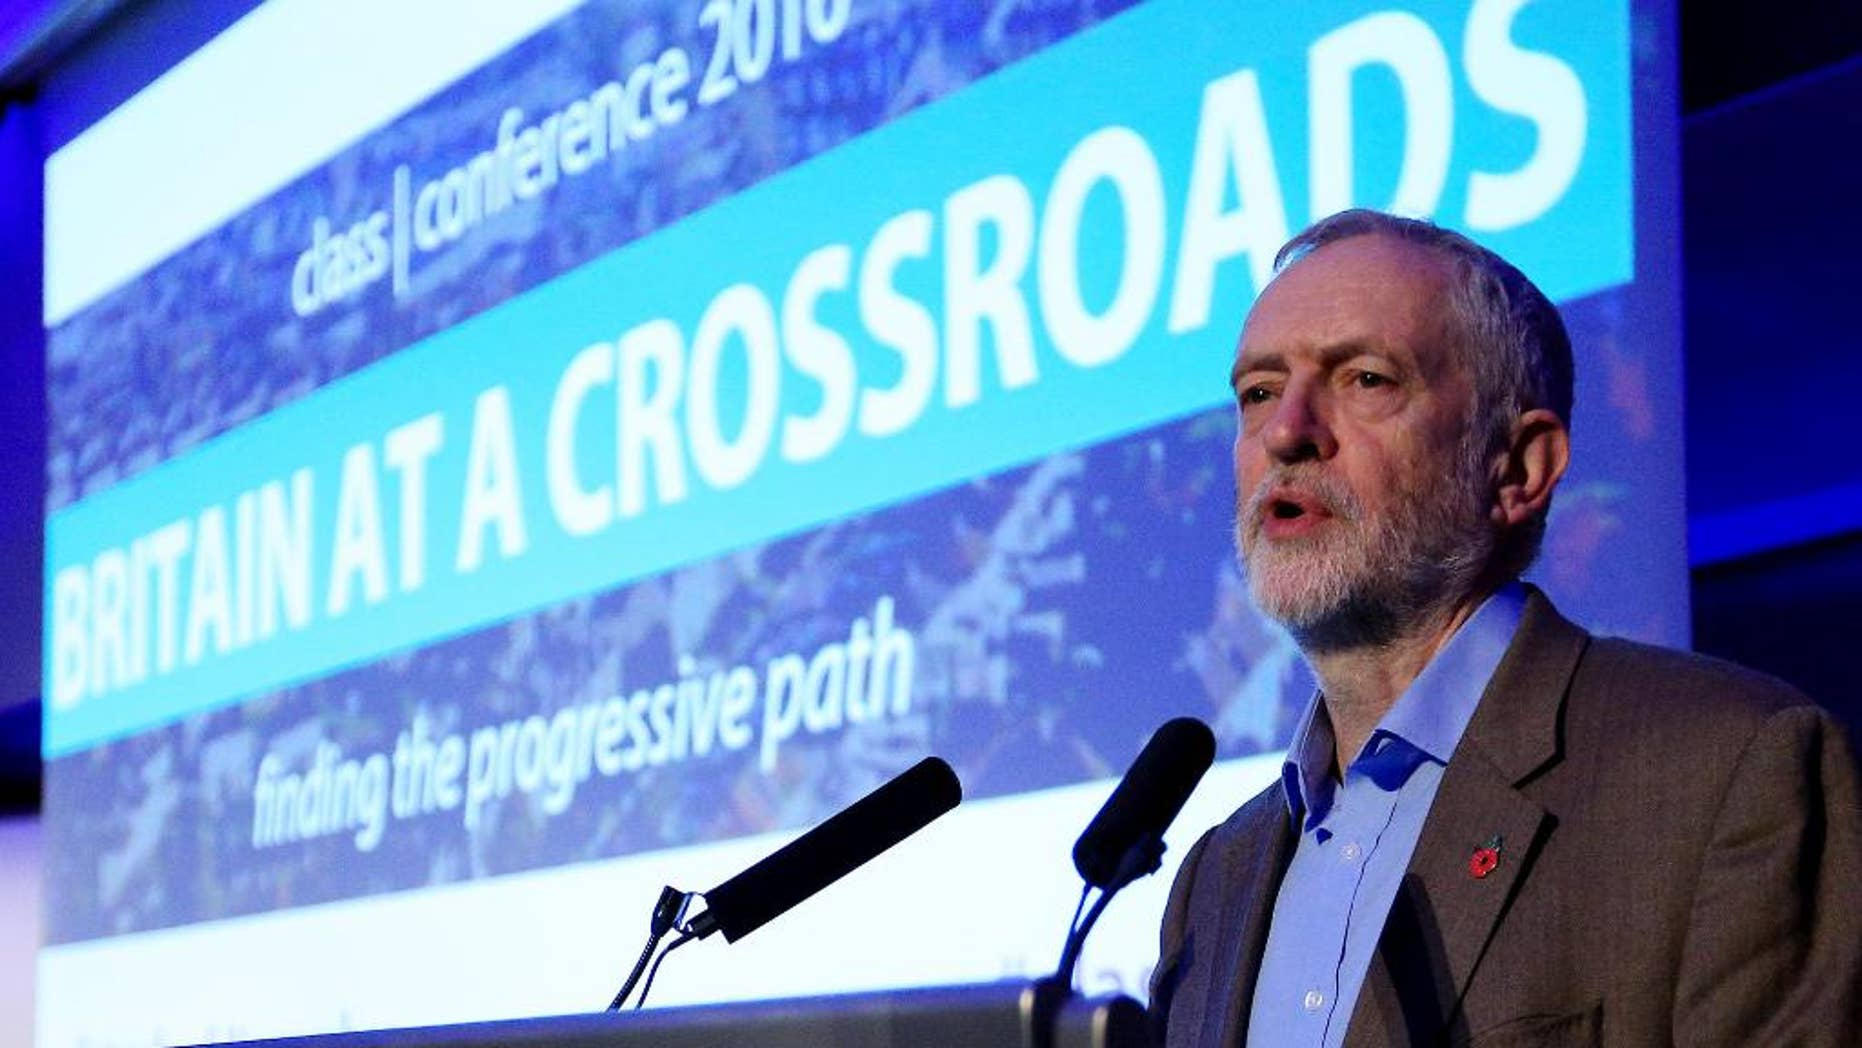 Britain's Labour Party leader Jeremy Corbyn gives a speech at the TUC Congress Centre in central London Saturday Nov. 5, 2016.  A High Court ruling that Britain's Parliament must give approval before triggering the formal process of Brexit, taking Britain out of the European Union, is forcing Corbyn to manage his party to form a cohesive opposition, seemingly without strong support from his party's legislators.  (Jonathan Brady / PA via AP)